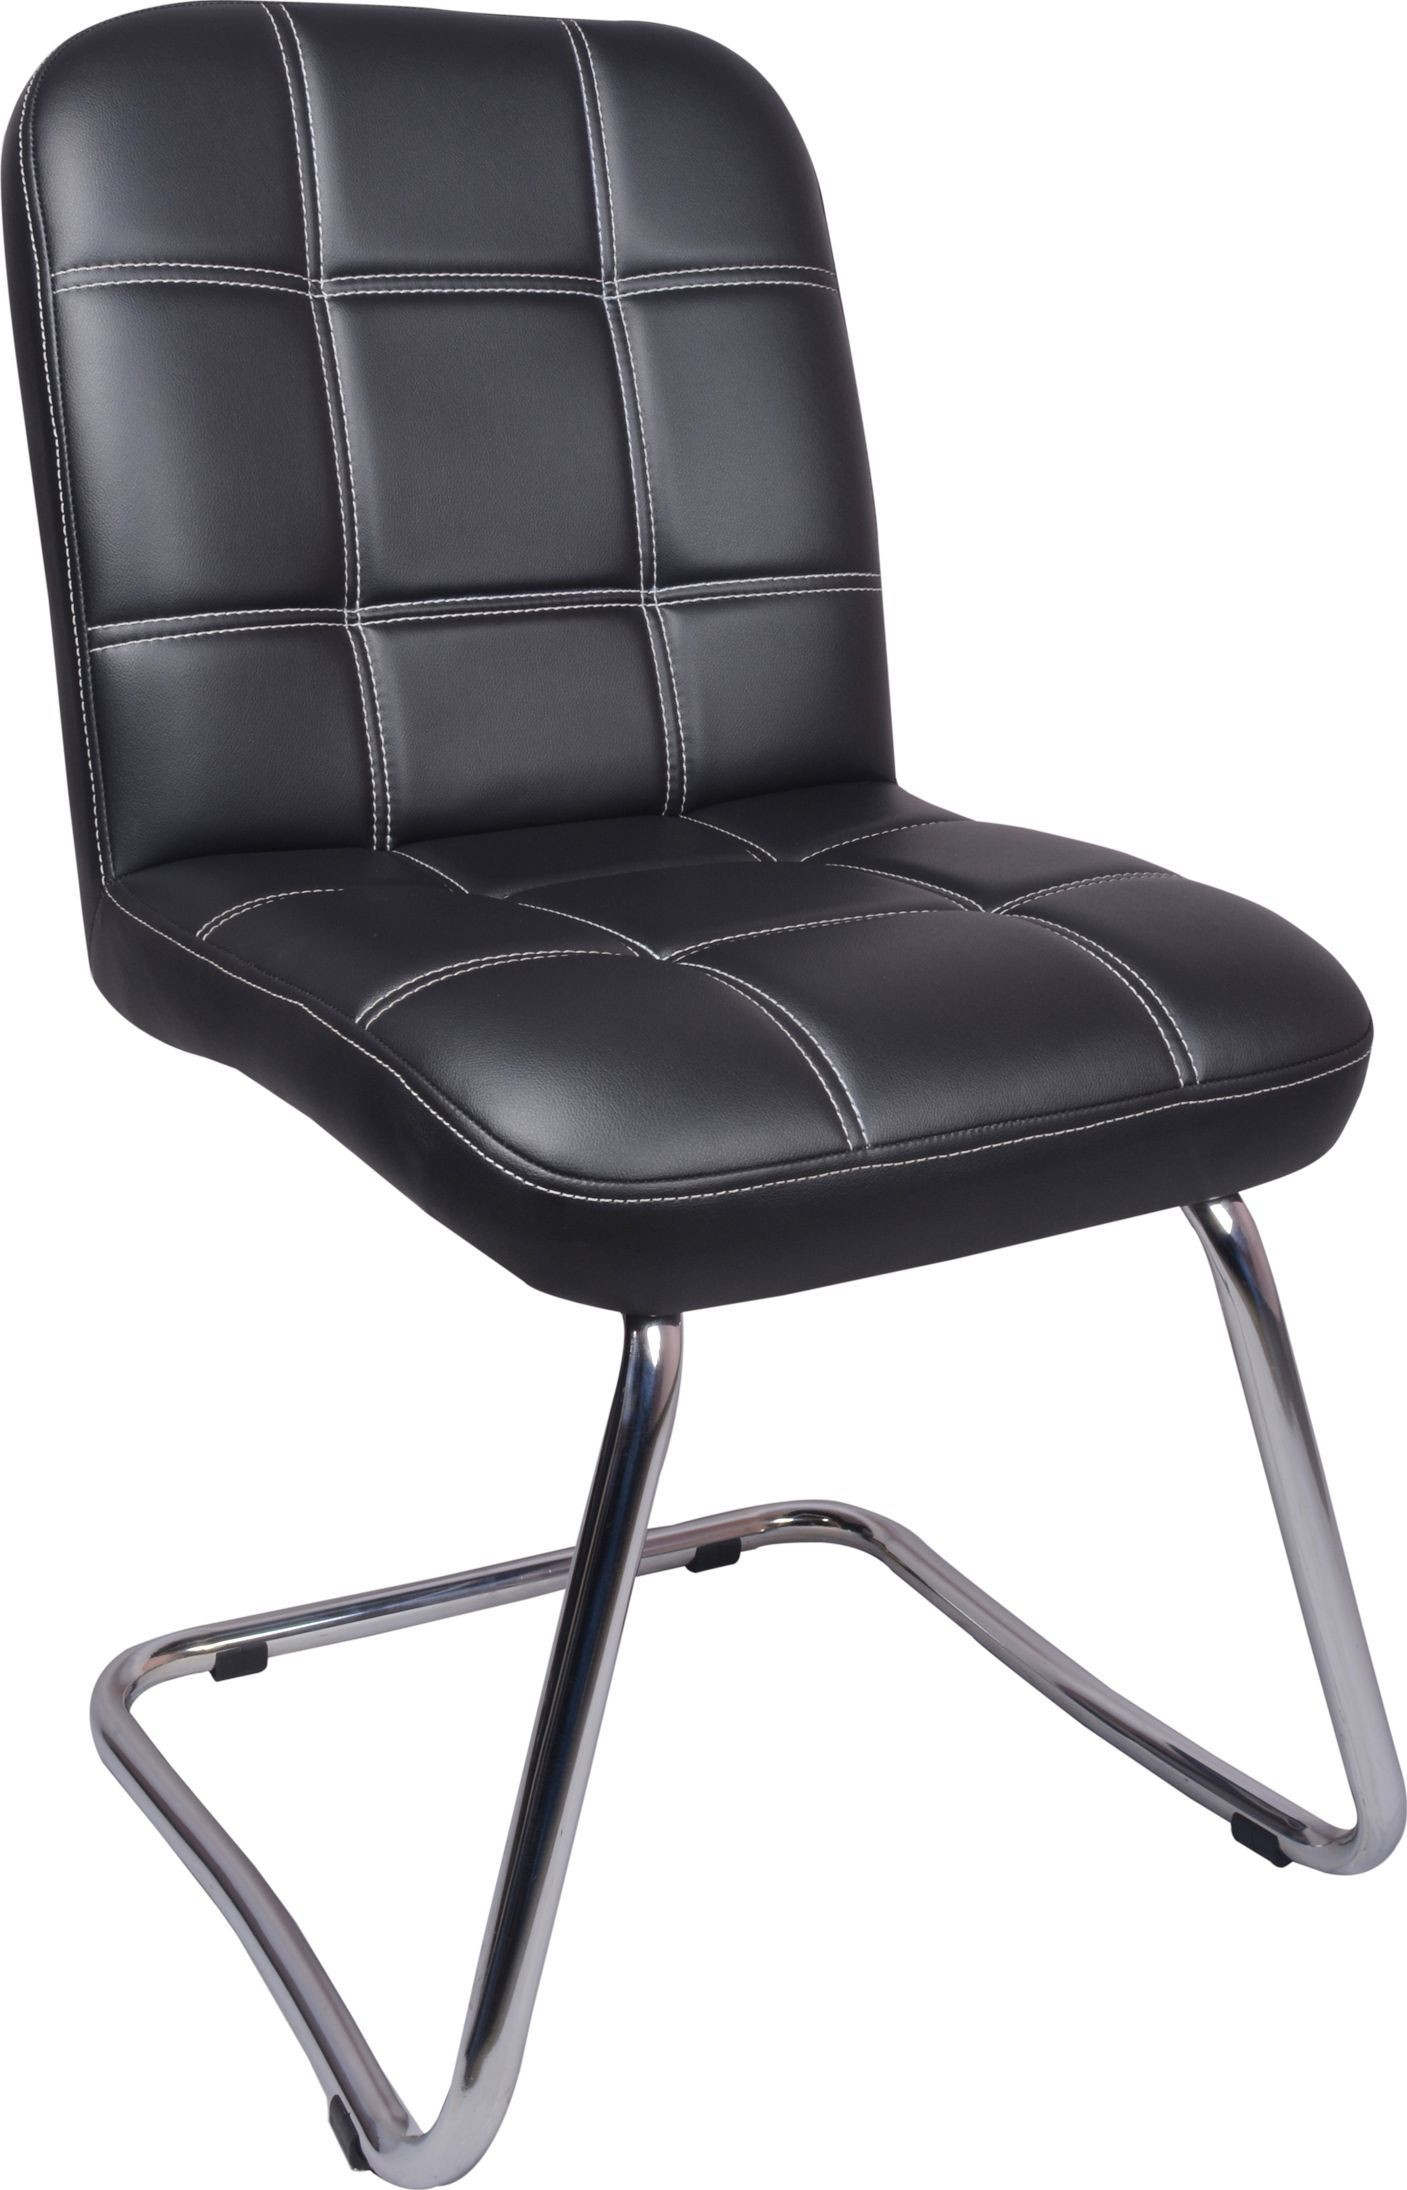 Deals | Leatherette Chairs Durian & more